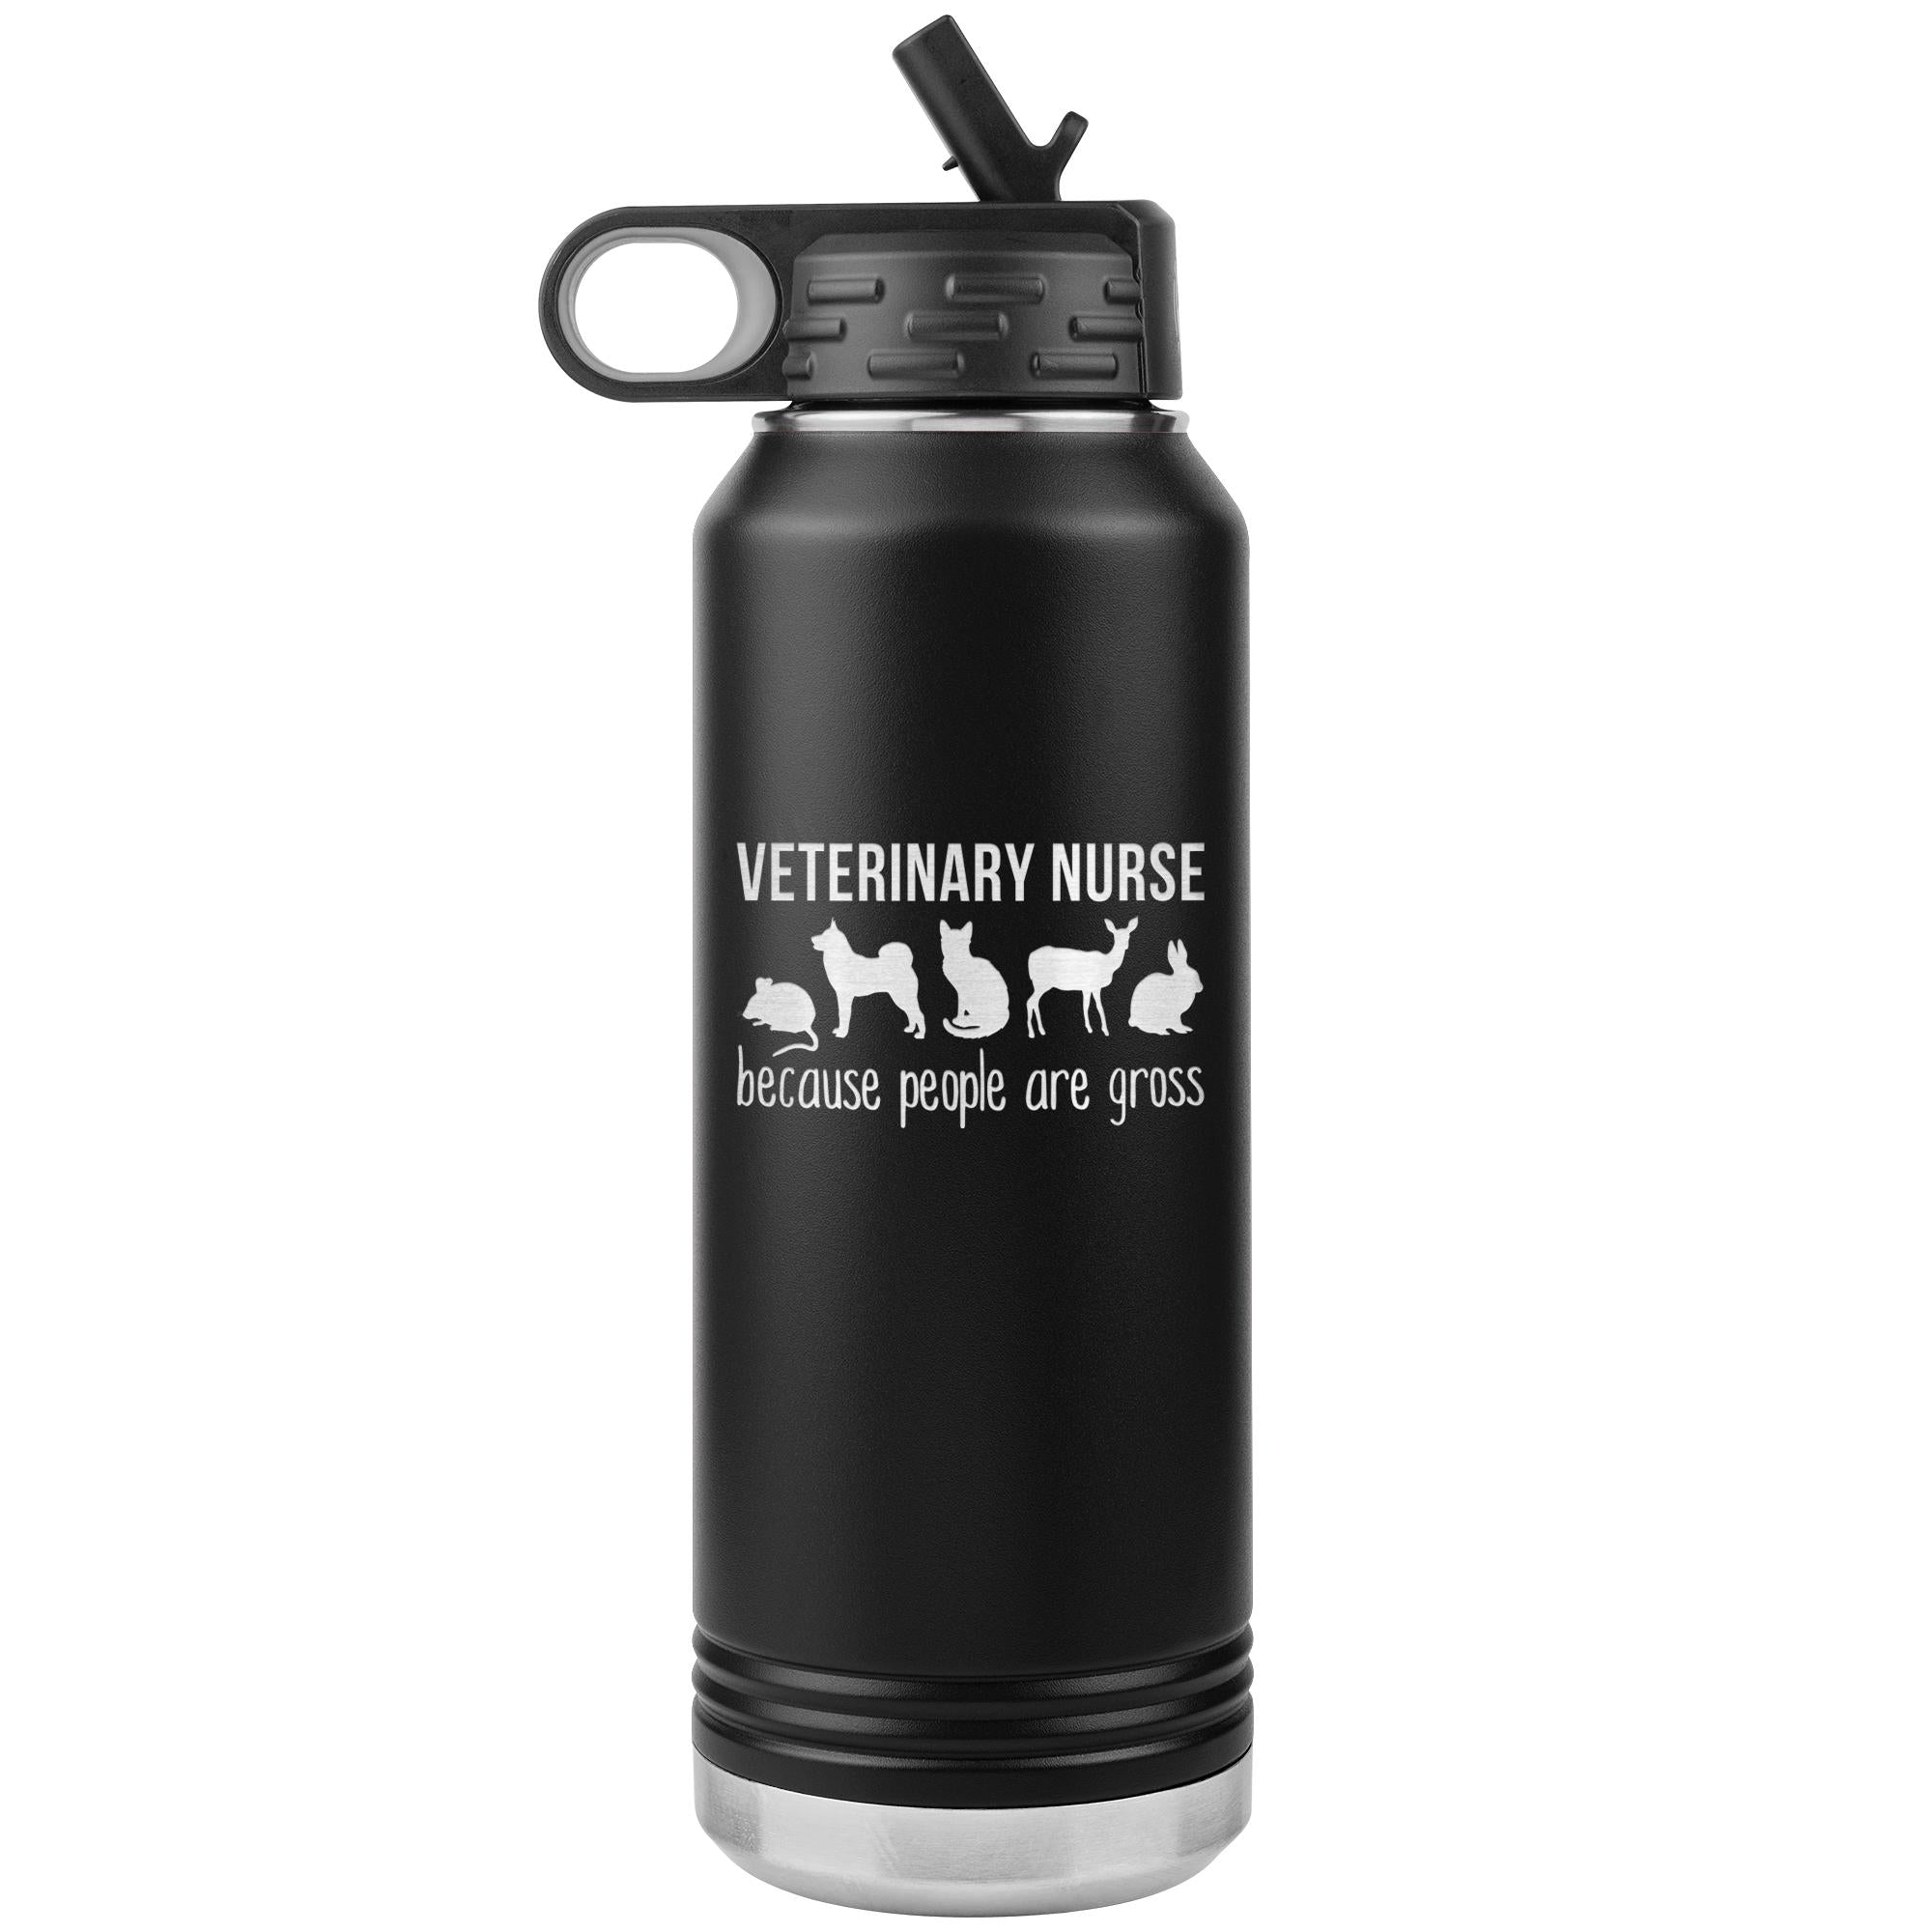 Vet nurse, because people are gross Water Bottle Tumbler 32 oz-Tumblers-I love Veterinary